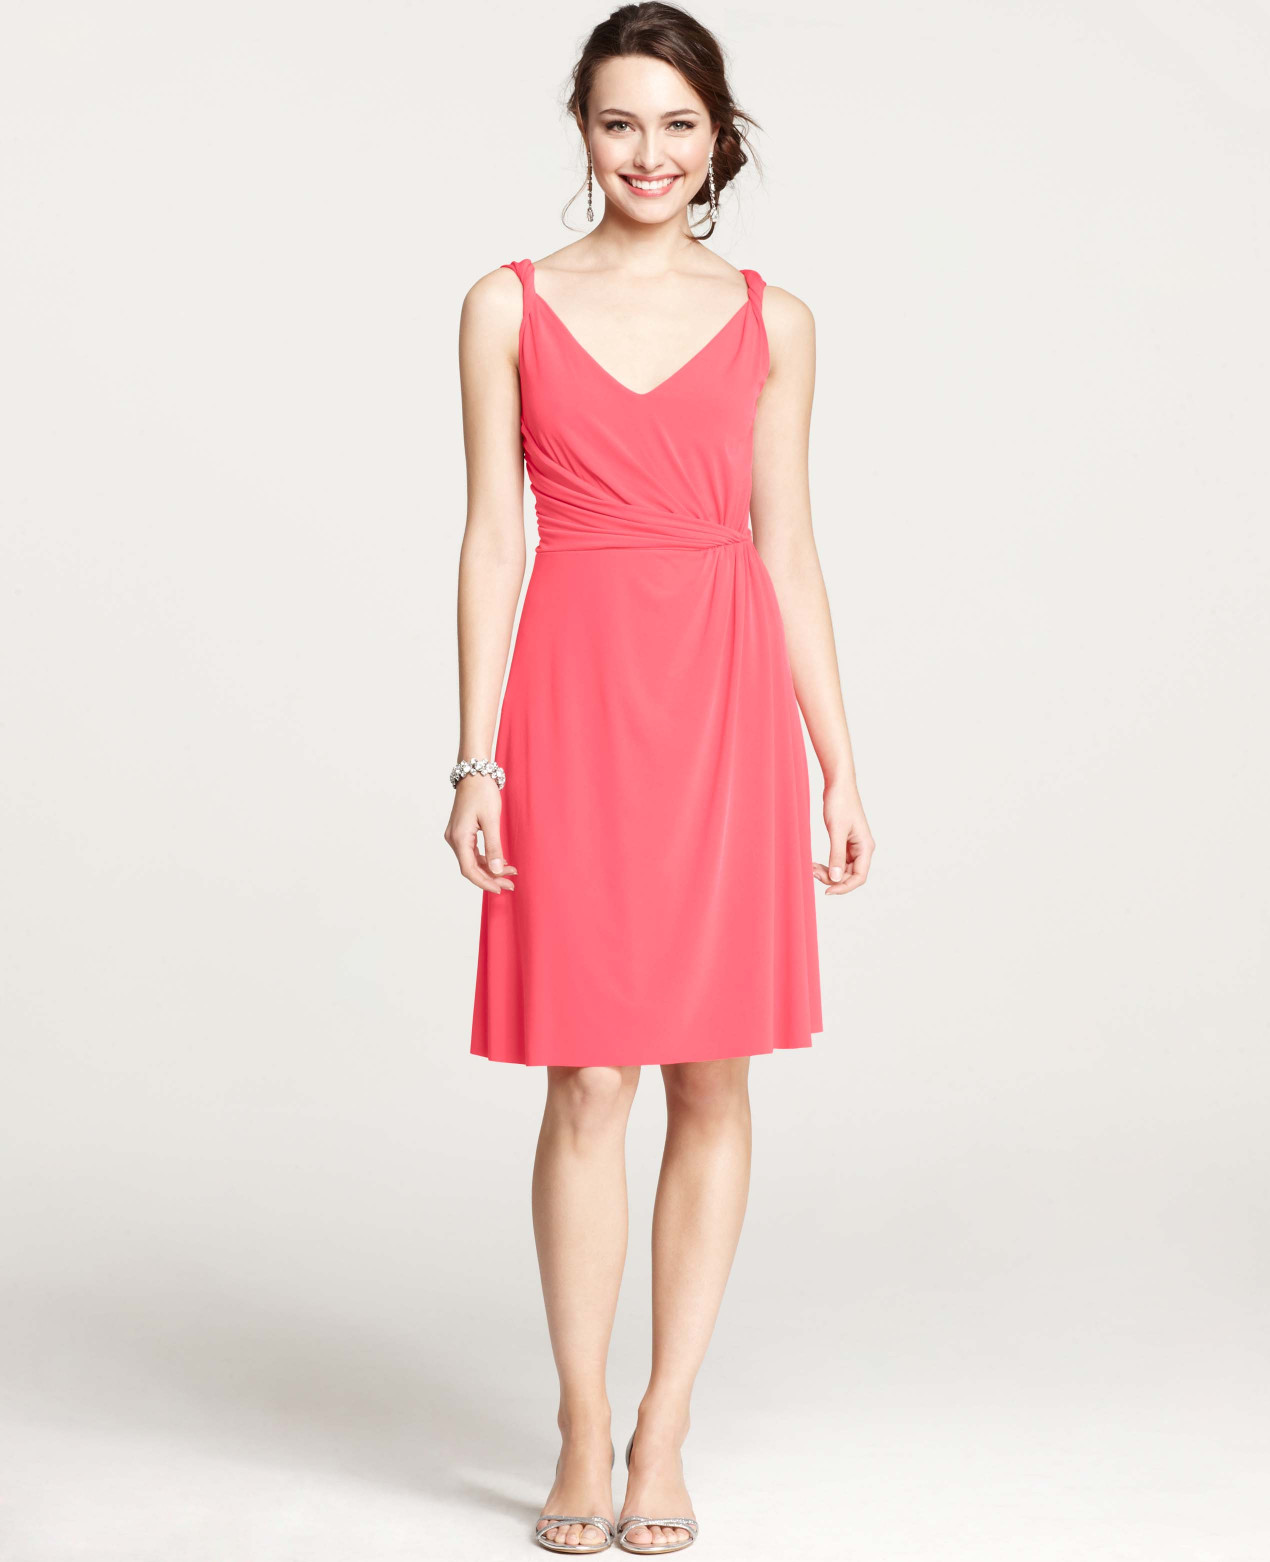 Ann taylor jersey twisted shoulder strap bridesmaid dress in pink gallery womens bridesmaid dresses ombrellifo Images